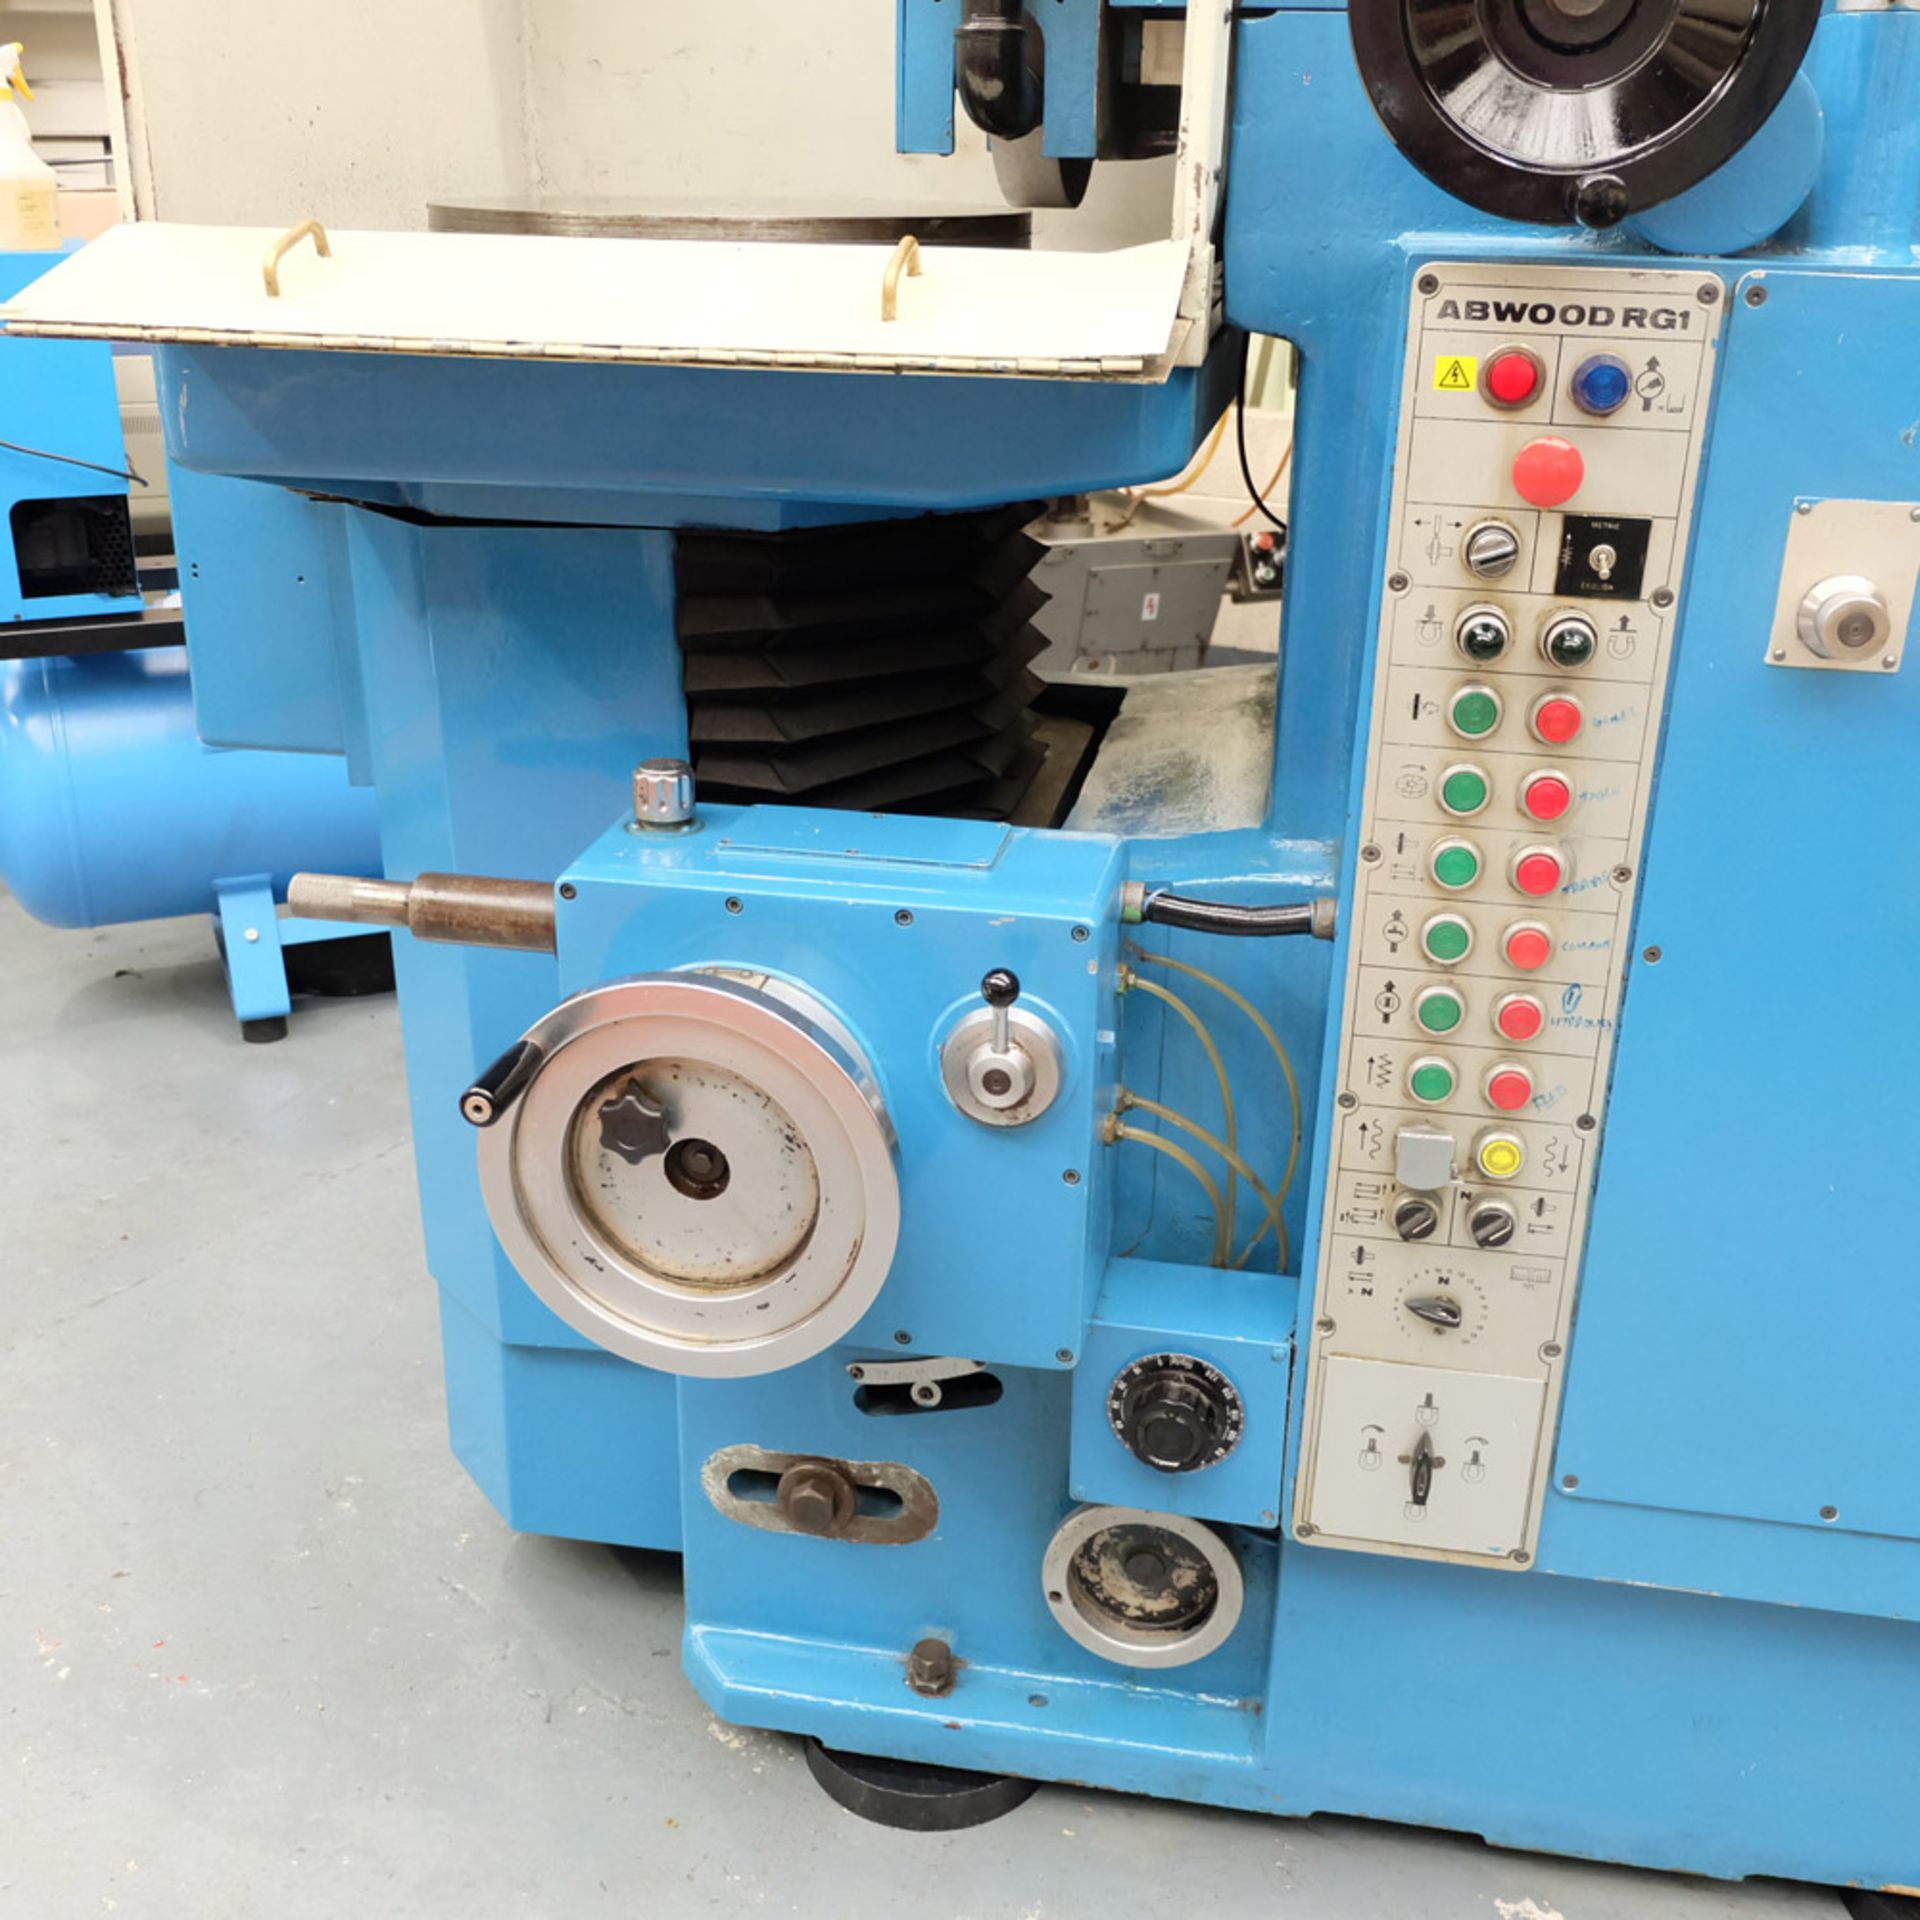 Abwood Type RG1 Tool Room Ring Grinder. Table Size 500mm. Magnetic Chuck 500mm. - Image 4 of 8